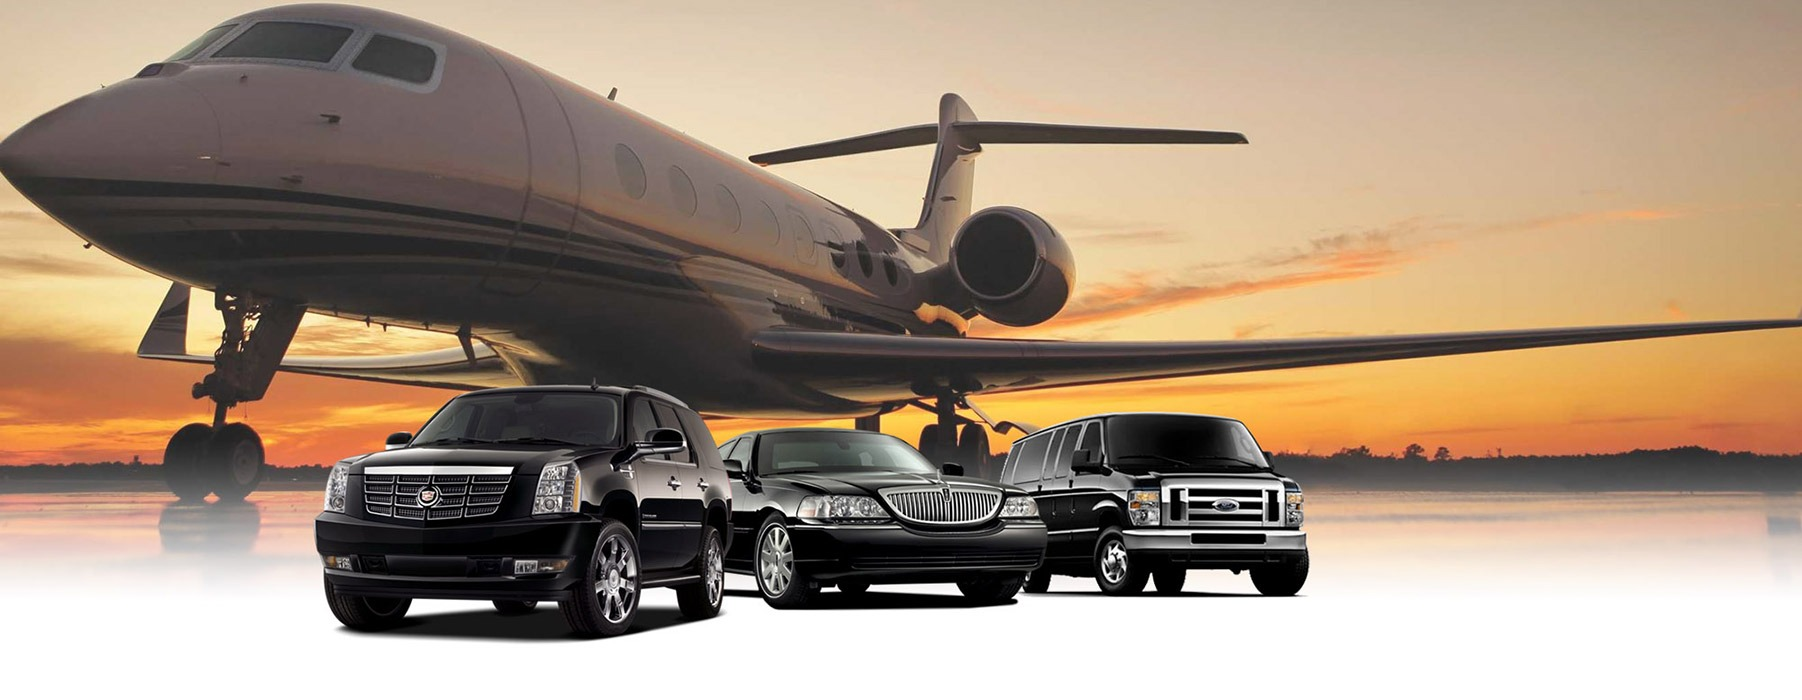 Airport Transportation DC